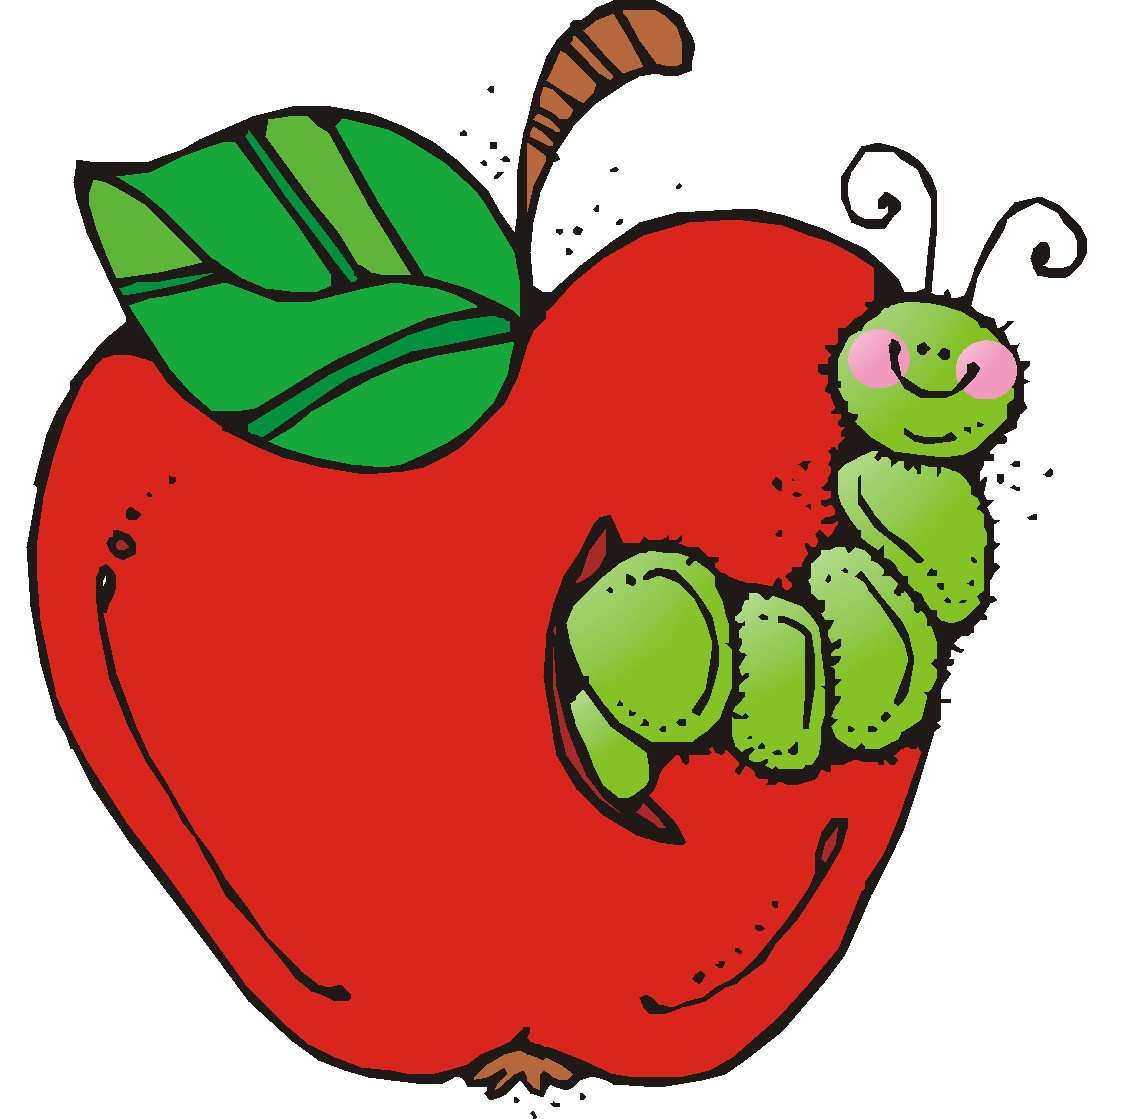 1125x1119 Apple Clipart For Teachers 181 Clipart Panda